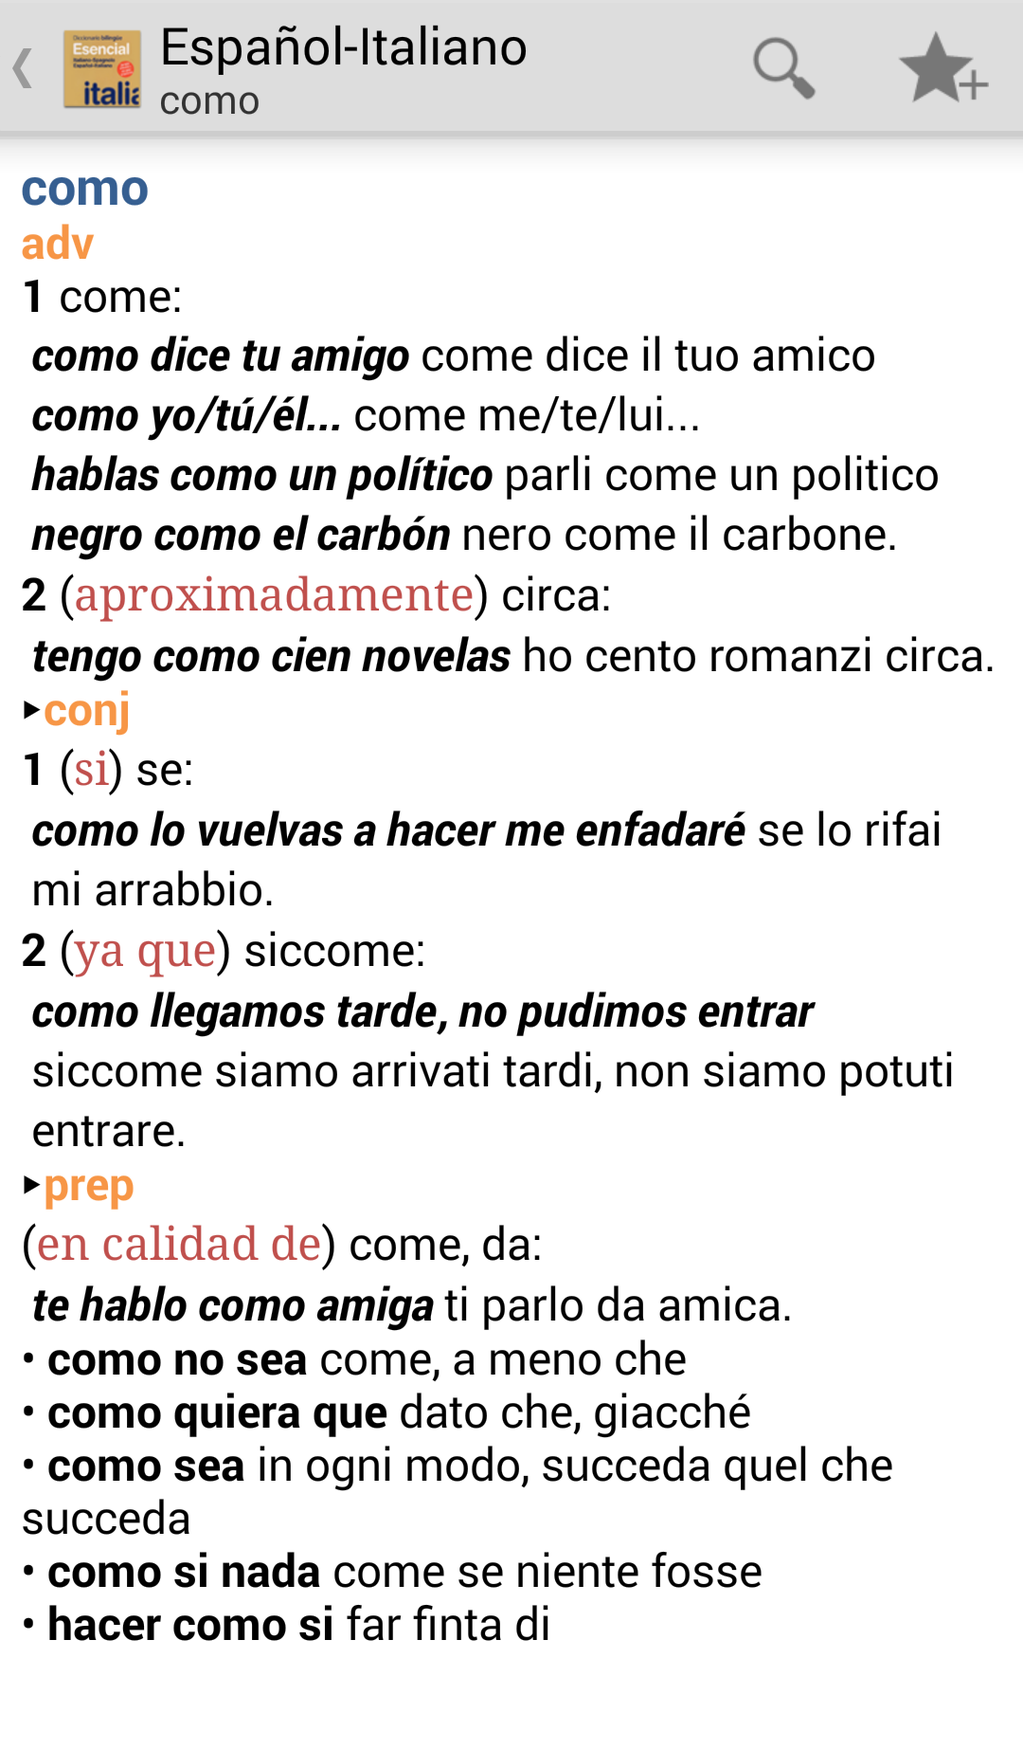 Vox Essential ItalianSpanish Dictionary Screenshot 1